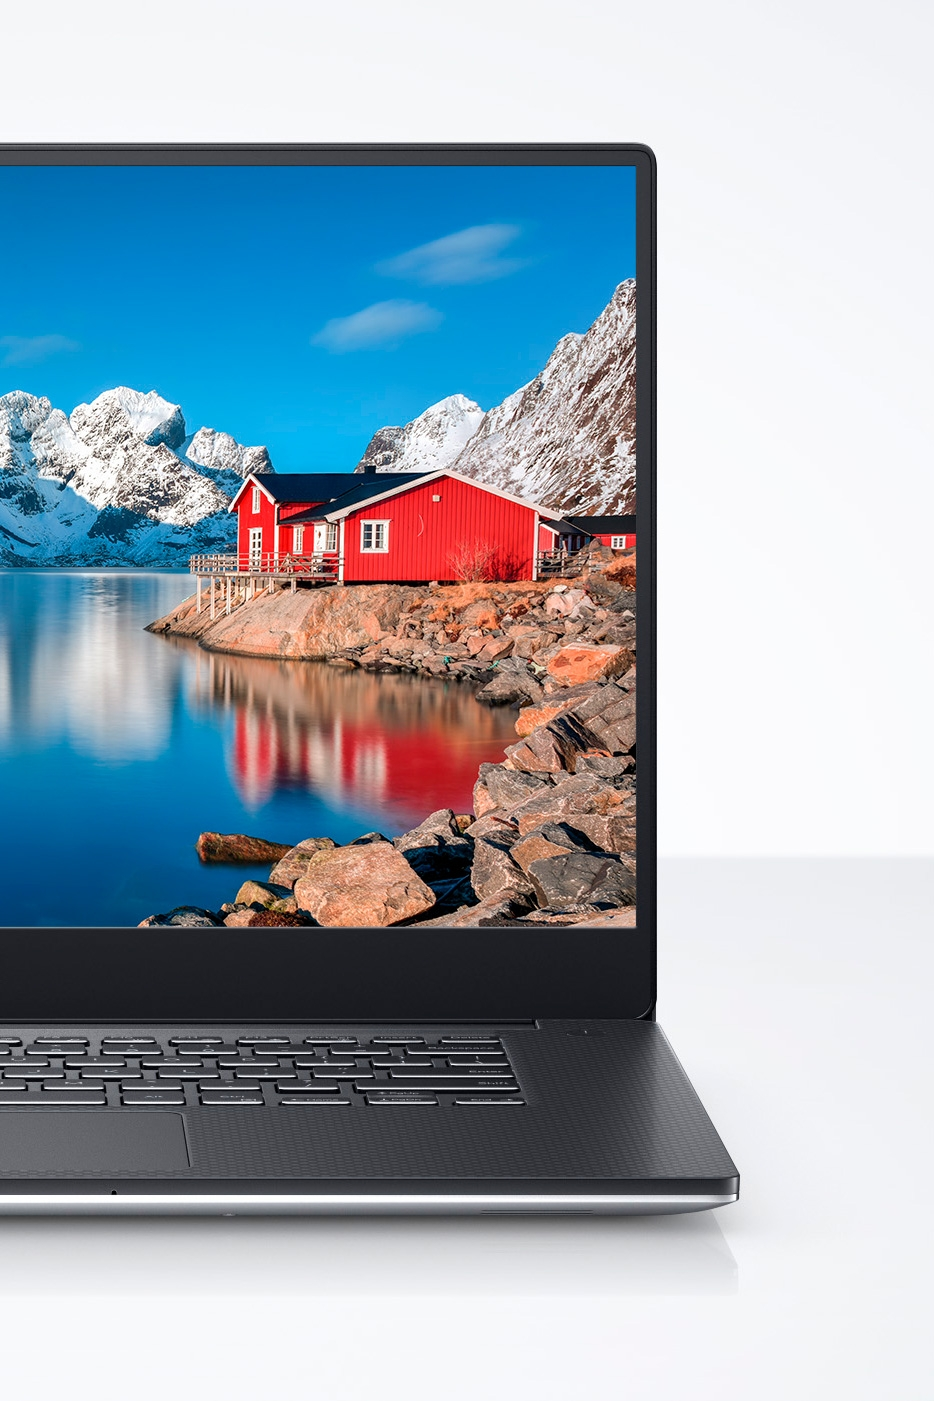 Dell upgrades the best laptop for designers and artists